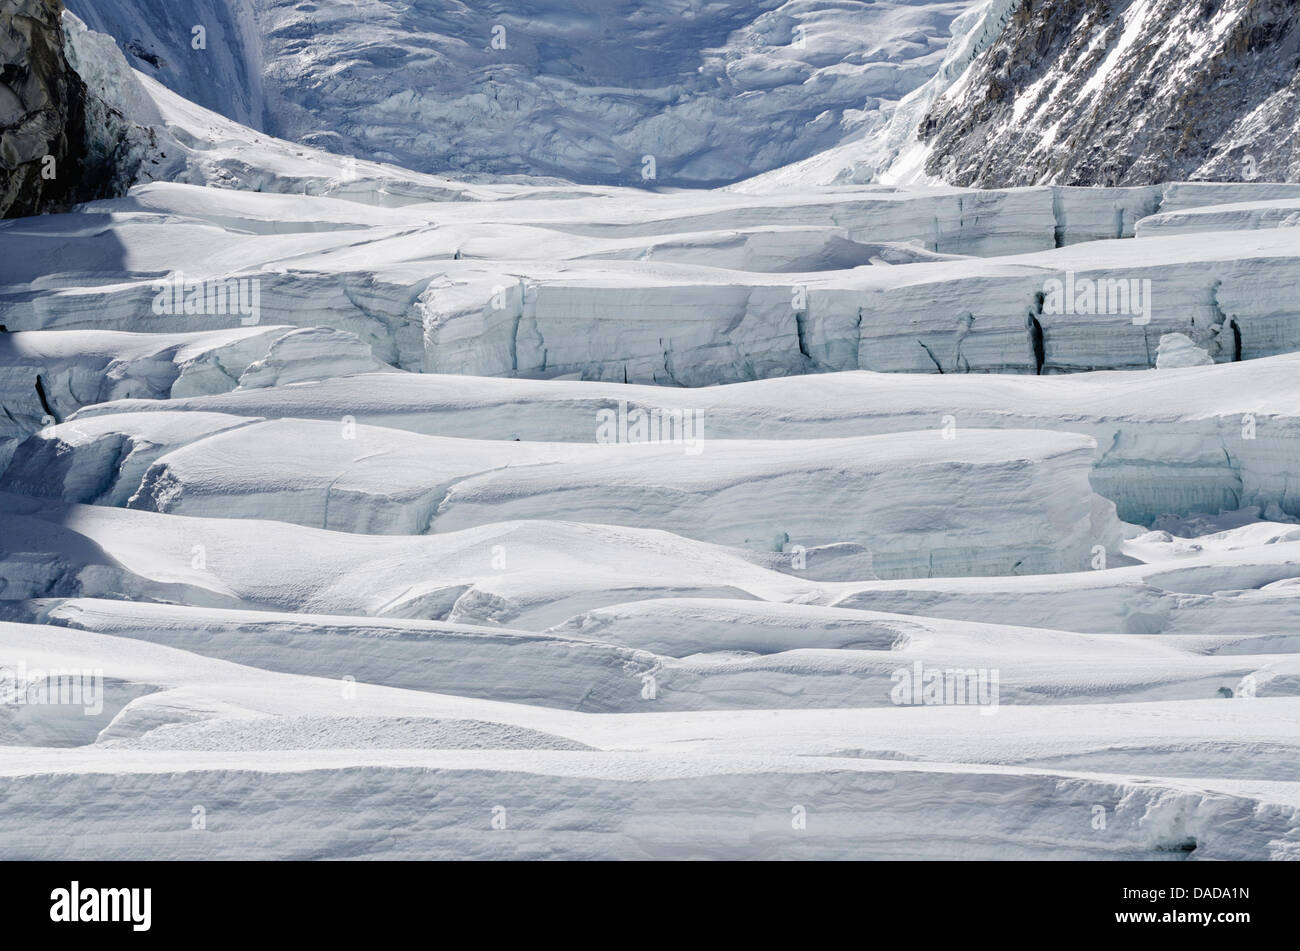 Crevasses on Mount Everest, Solu Khumbu Everest Region, Sagarmatha National Park, UNESCO World Heritage Site, Nepal, - Stock Image